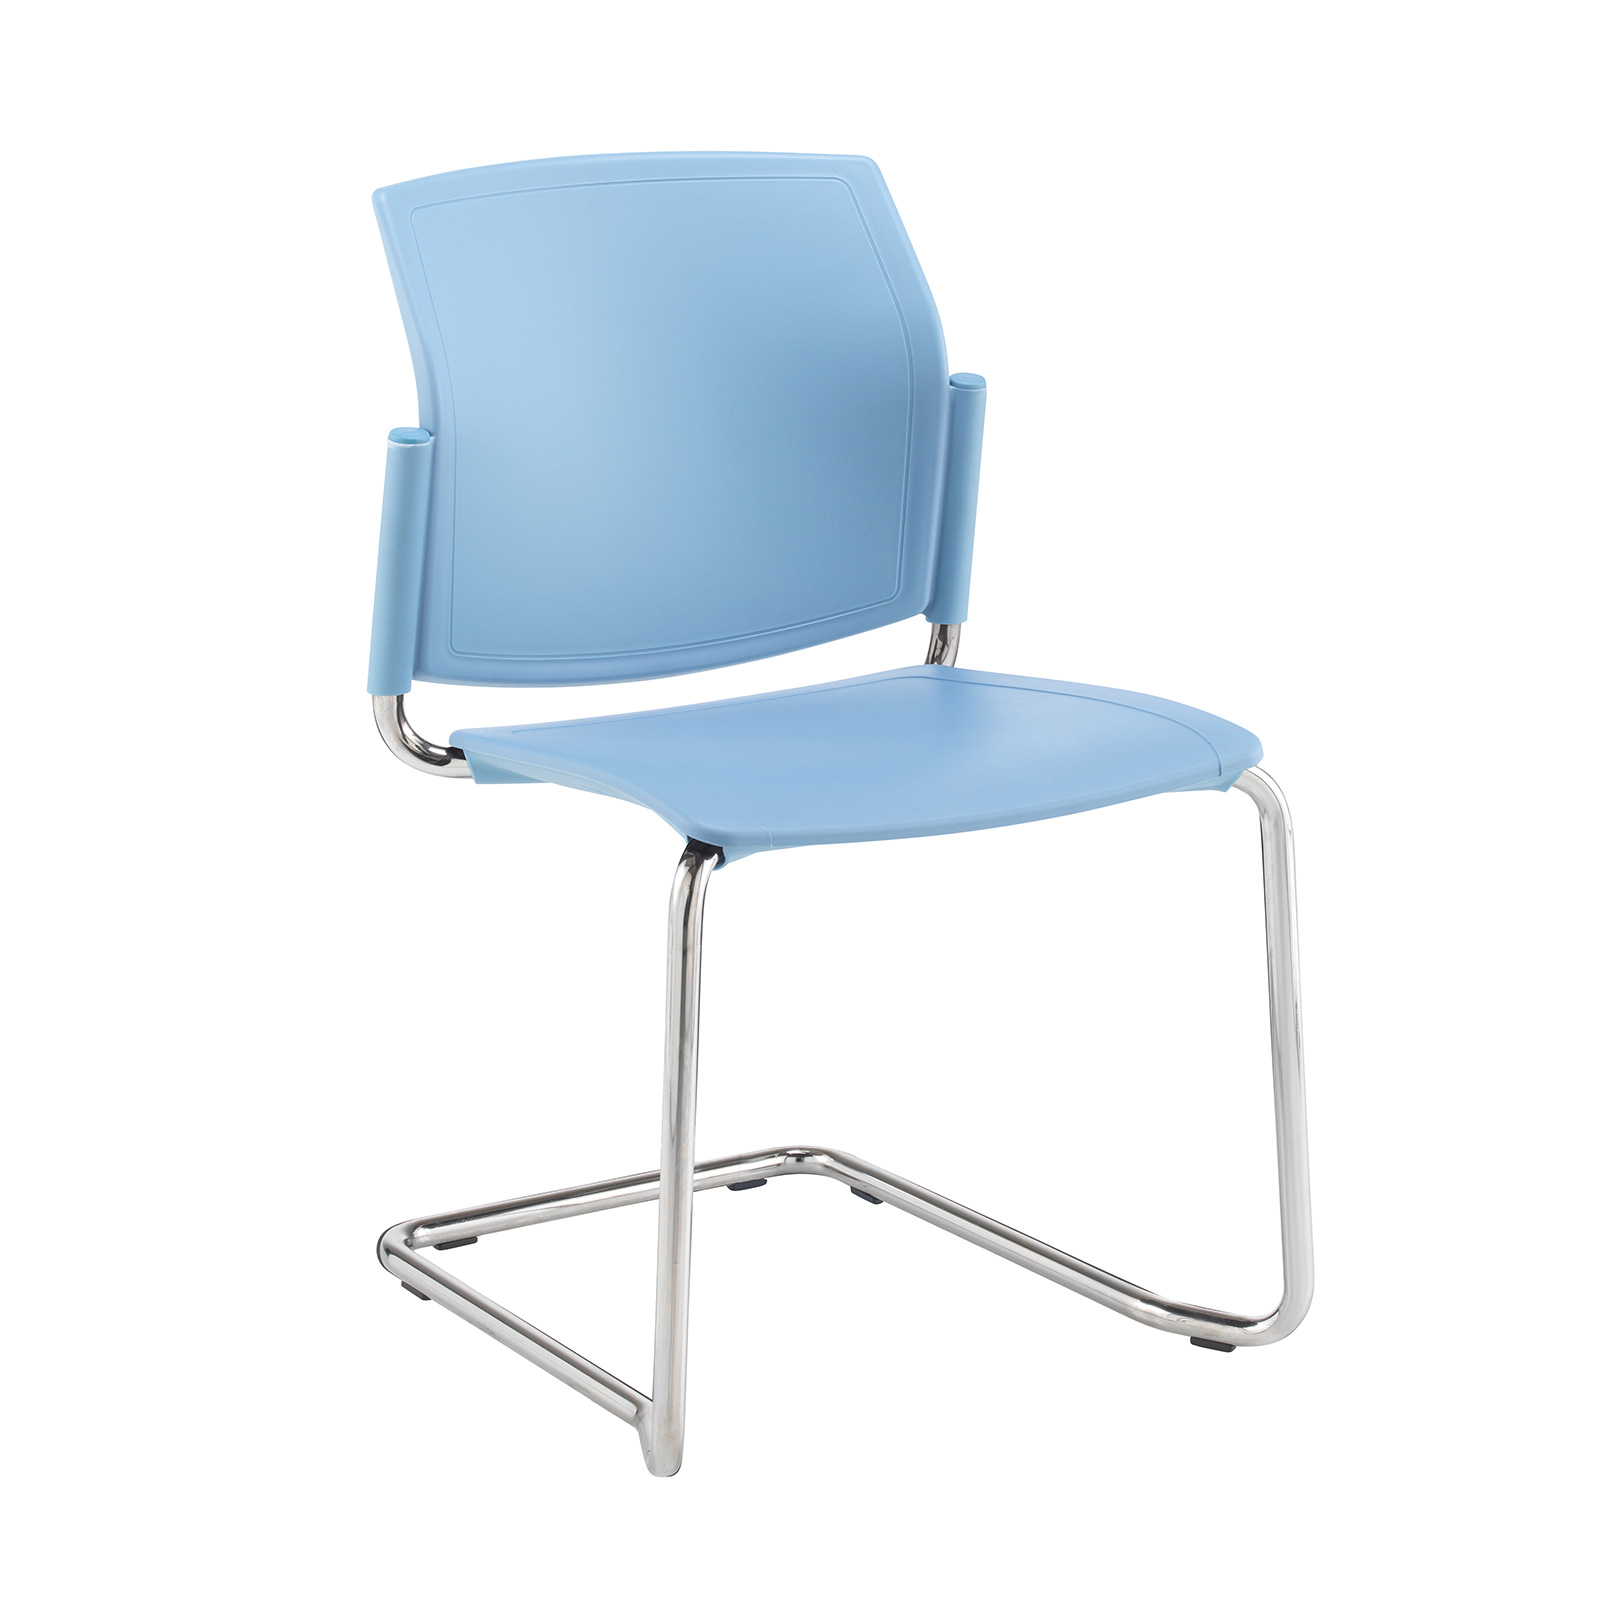 Santana cantilever chair with plastic seat and back